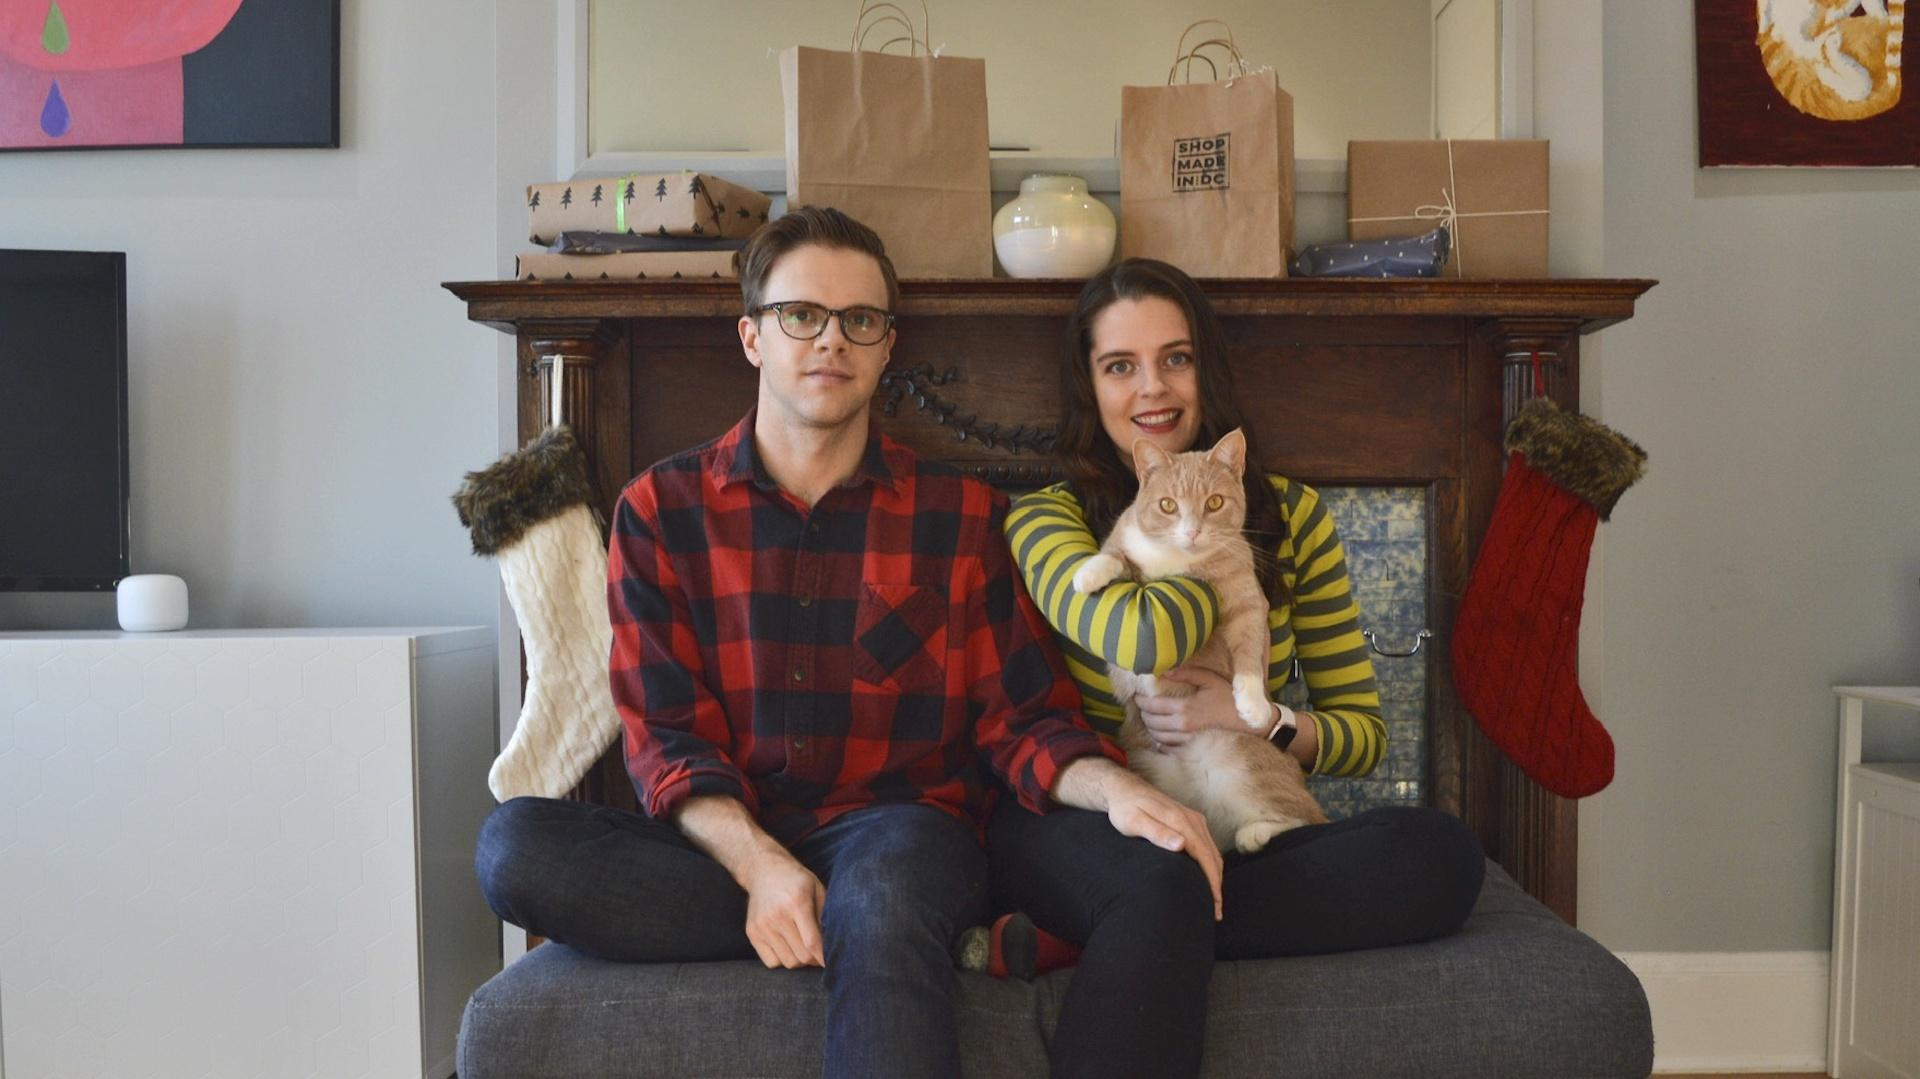 In this photo provided by Kate Hilts, Ross Hettervig, left, and Kate Hilts pose for a photo with their cat, Potato, on Nov. 14, 2020, in Washington. (Kate Hilts via AP)